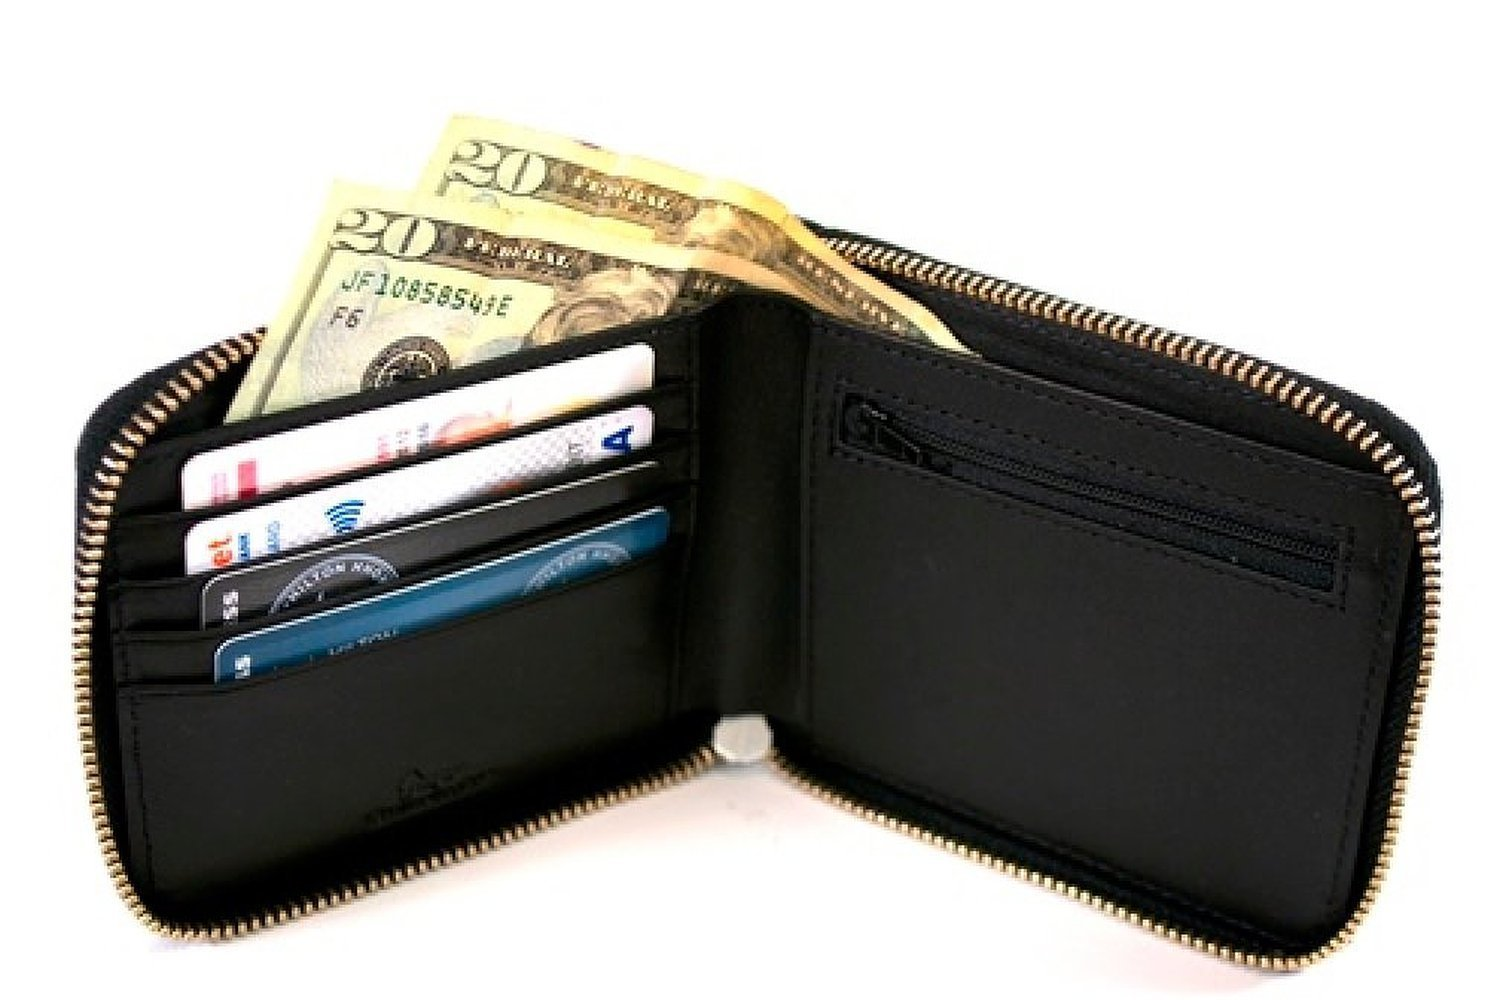 Royce Leather Rfid Blocking Zip Around Wallet in Saffiano Leather, Black by Royce Leather (Image #1)